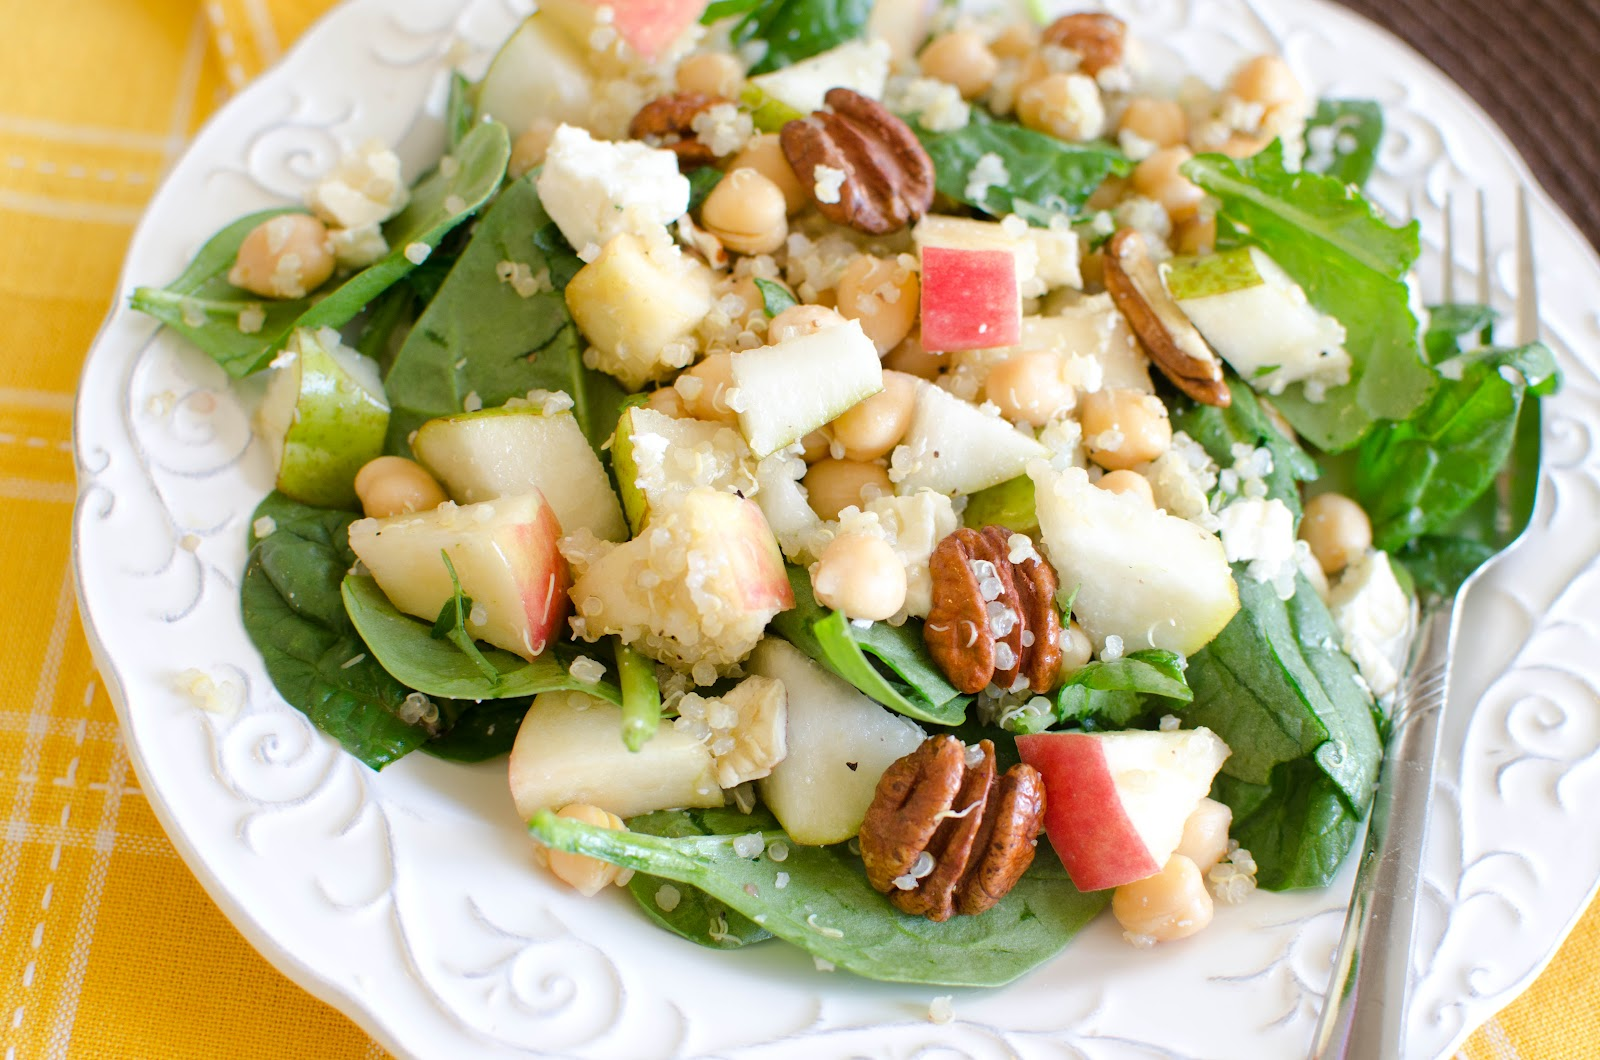 Fabulous Foods!: Quinoa Salad with pears, spinach and chickpeas